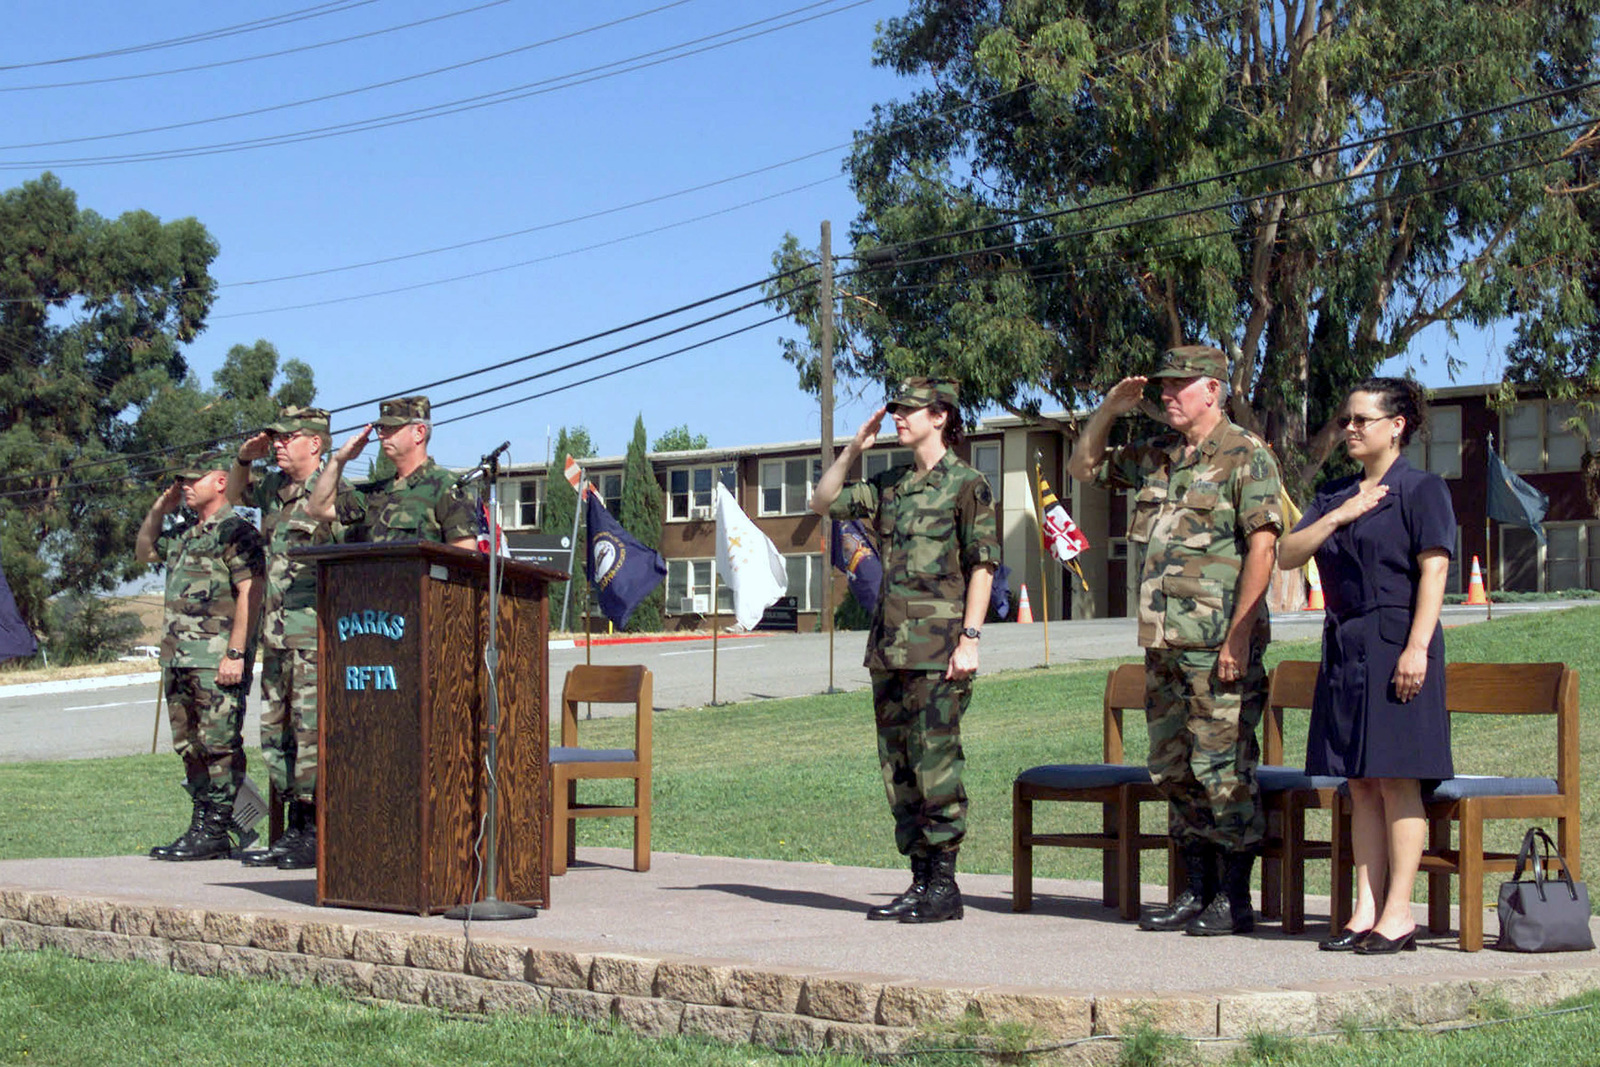 Pictured during the Change of Command Ceremony for the US Army Park Reserve Forces Training Area, Dublin, CA. (Left to right) Command Sergeant Major (CSM) Kevin P, Edwards; Outgoing Commander Lieutenant Colonel (LTC), John W. Randolph; Reviewing Officer, LTC Michael R. Staszak; Incoming Commander, LTC DawnLee DeYoung; Chaplain, LTC Richard Beach; and Ms. Dani Lorta, (Aide to Congresswoman Ellen Taucher)